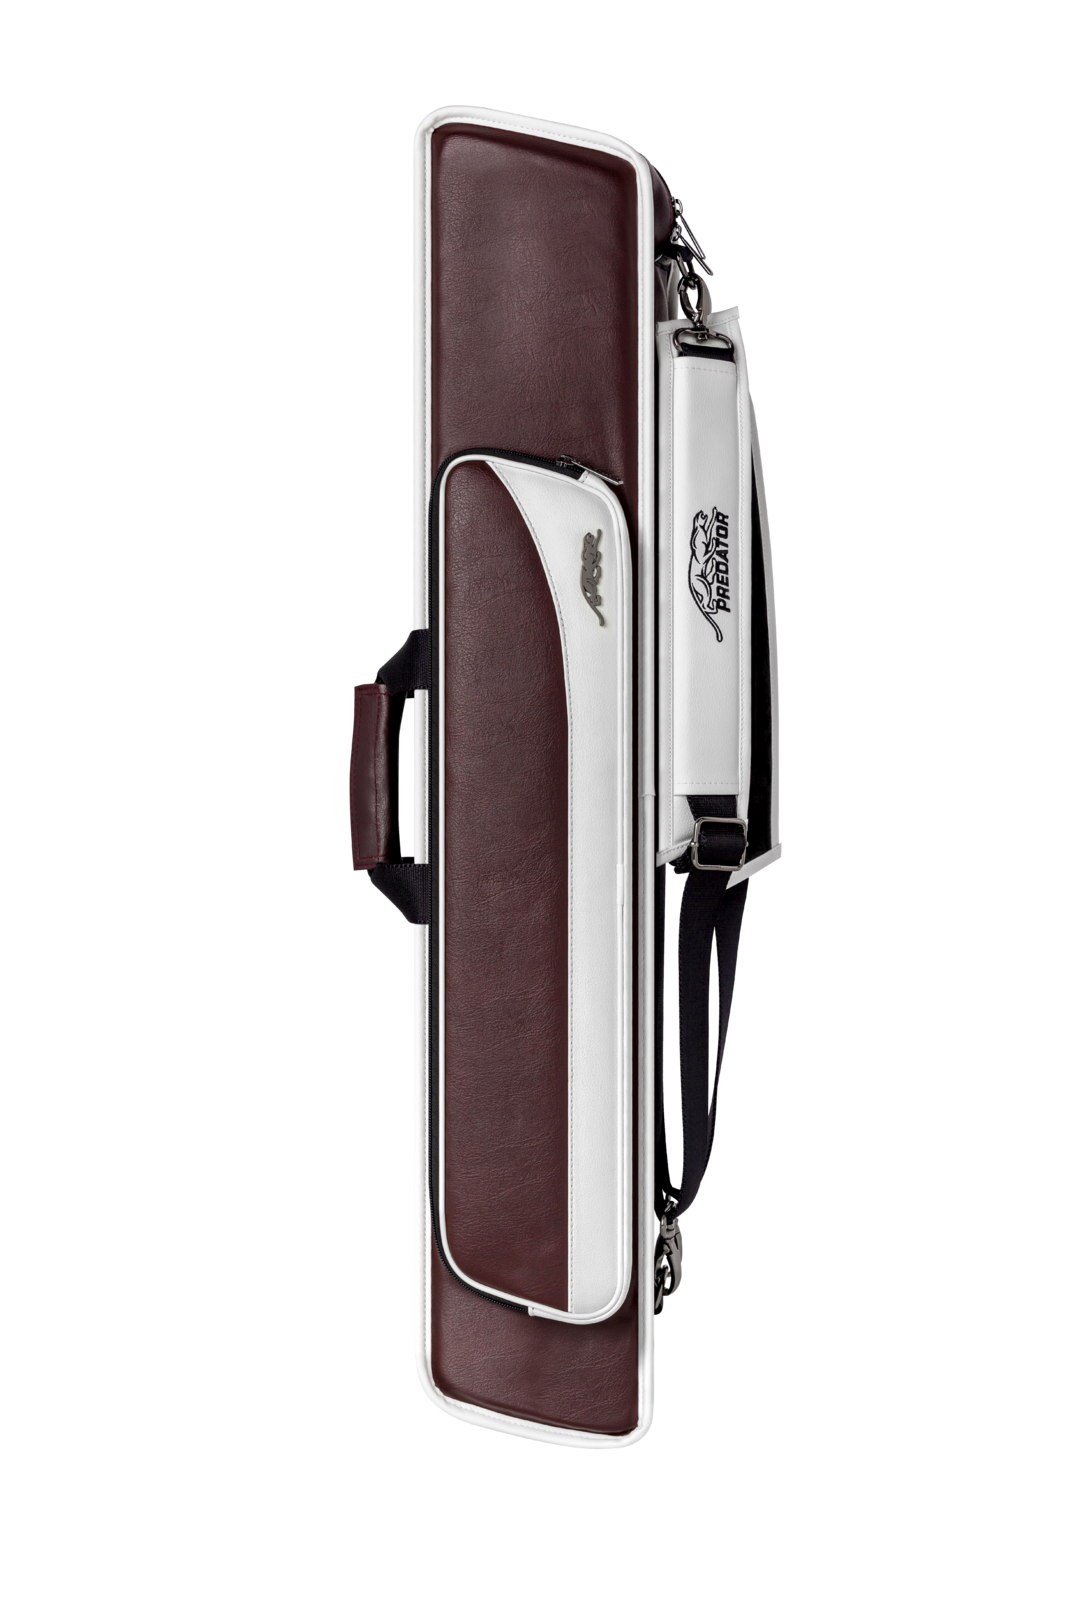 PREDATOR ROADLINE CASE 4X8 SOFT BURGANDY